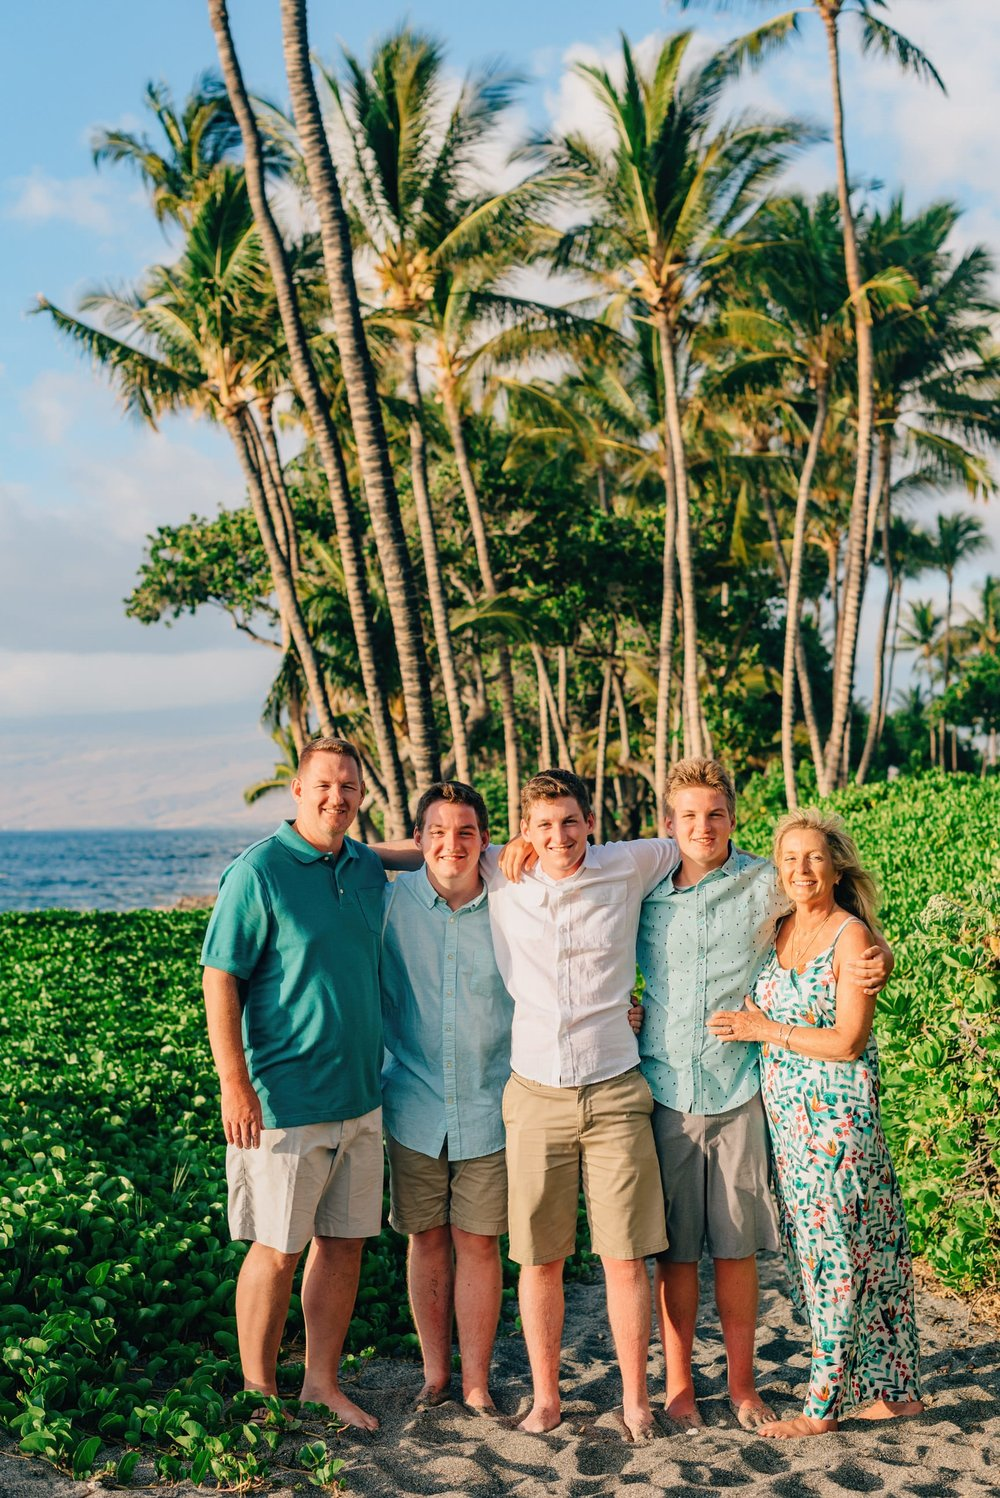 Family-Reunion-Vacation-Waikoloa-Beach-Photographer-09.jpg